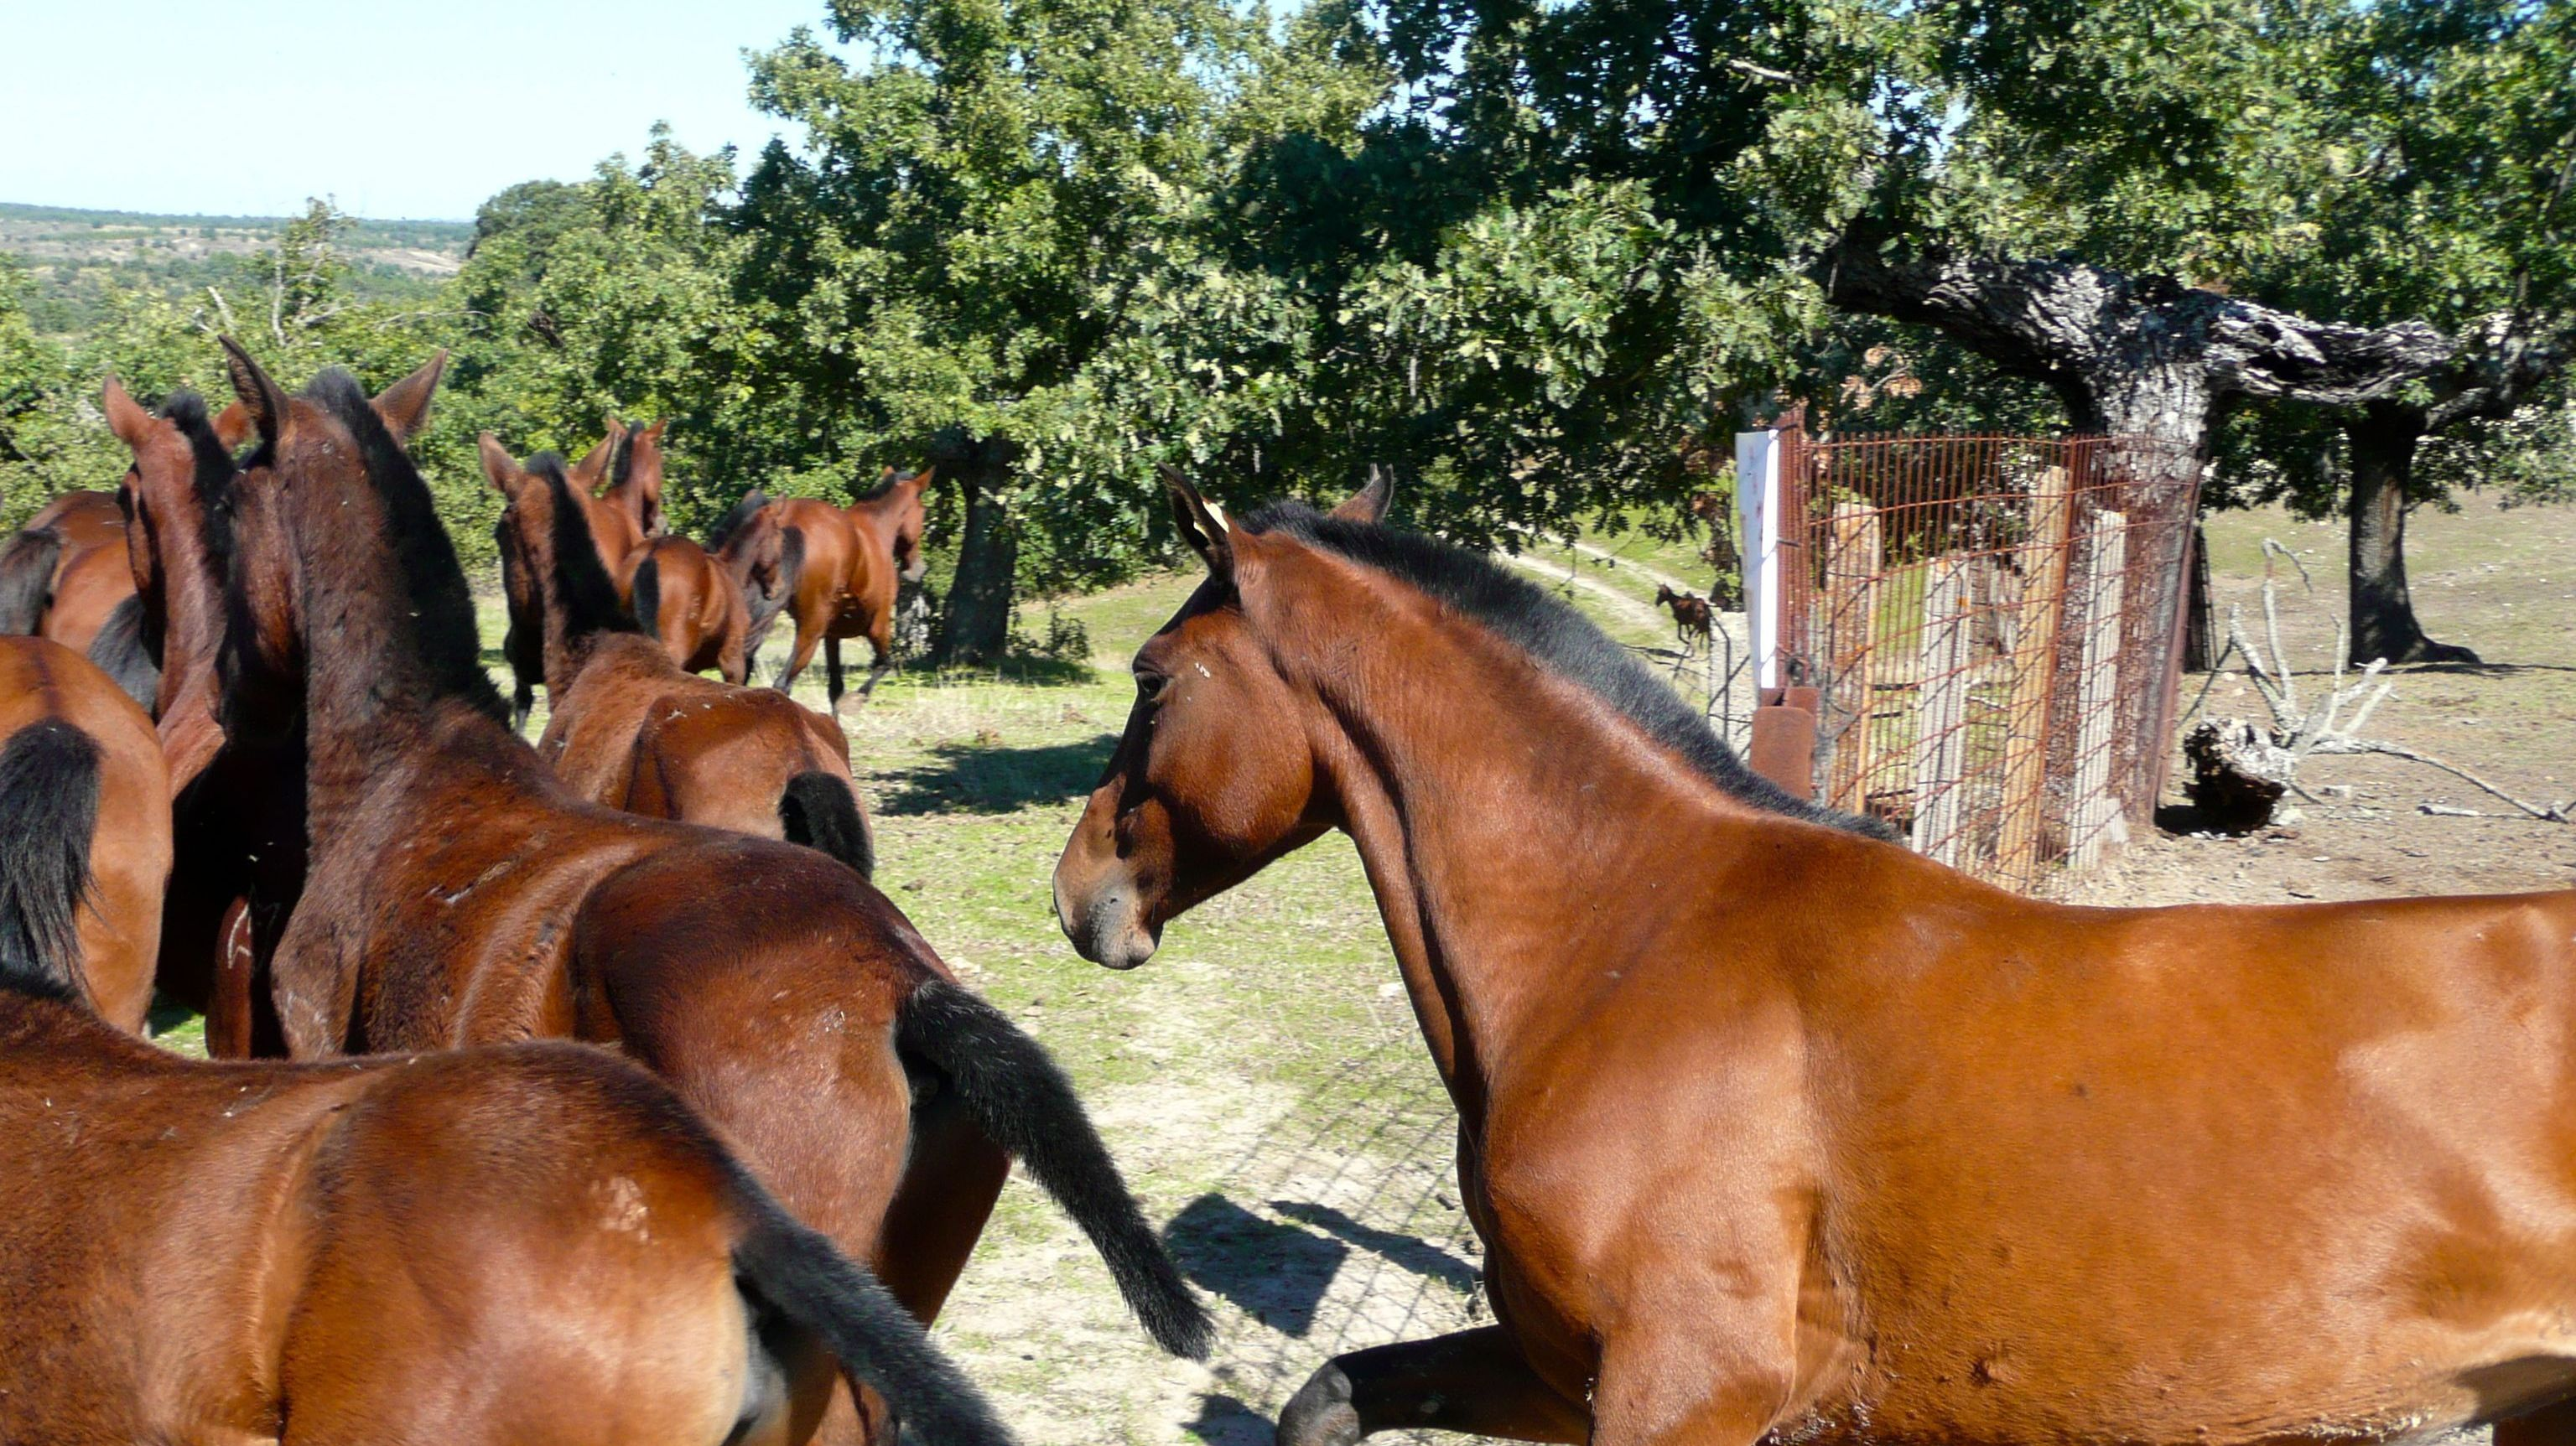 Rare Horses Released In Spain As Part Of 'Rewilding' Effort